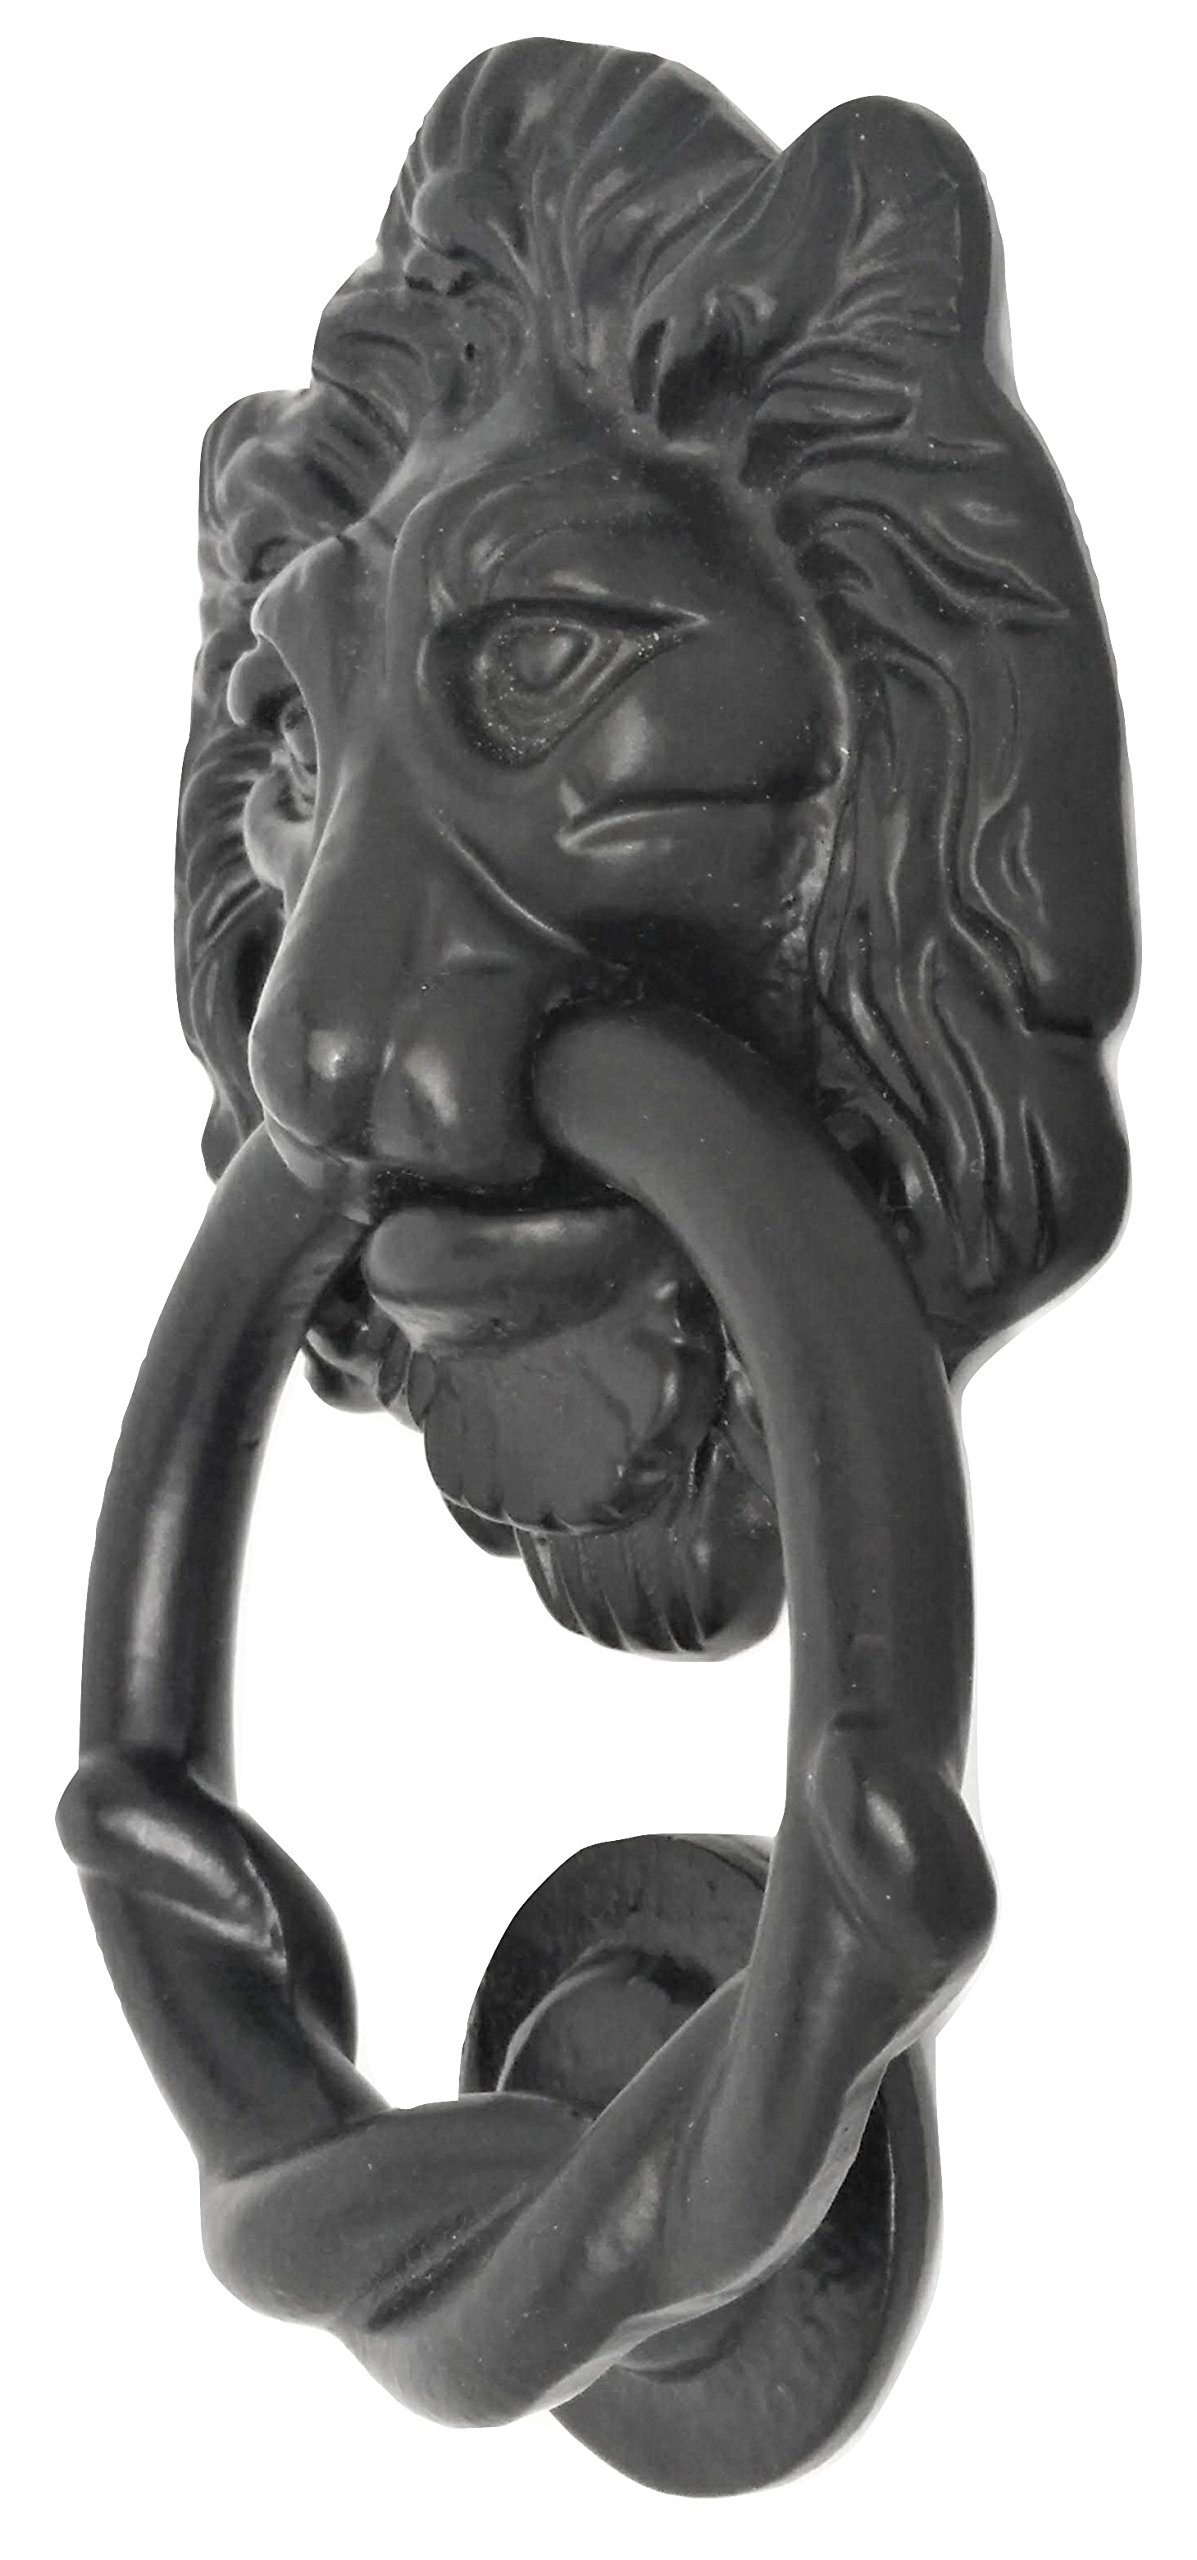 Antique Look Lion Door Knocker for Gates and Doors - Black